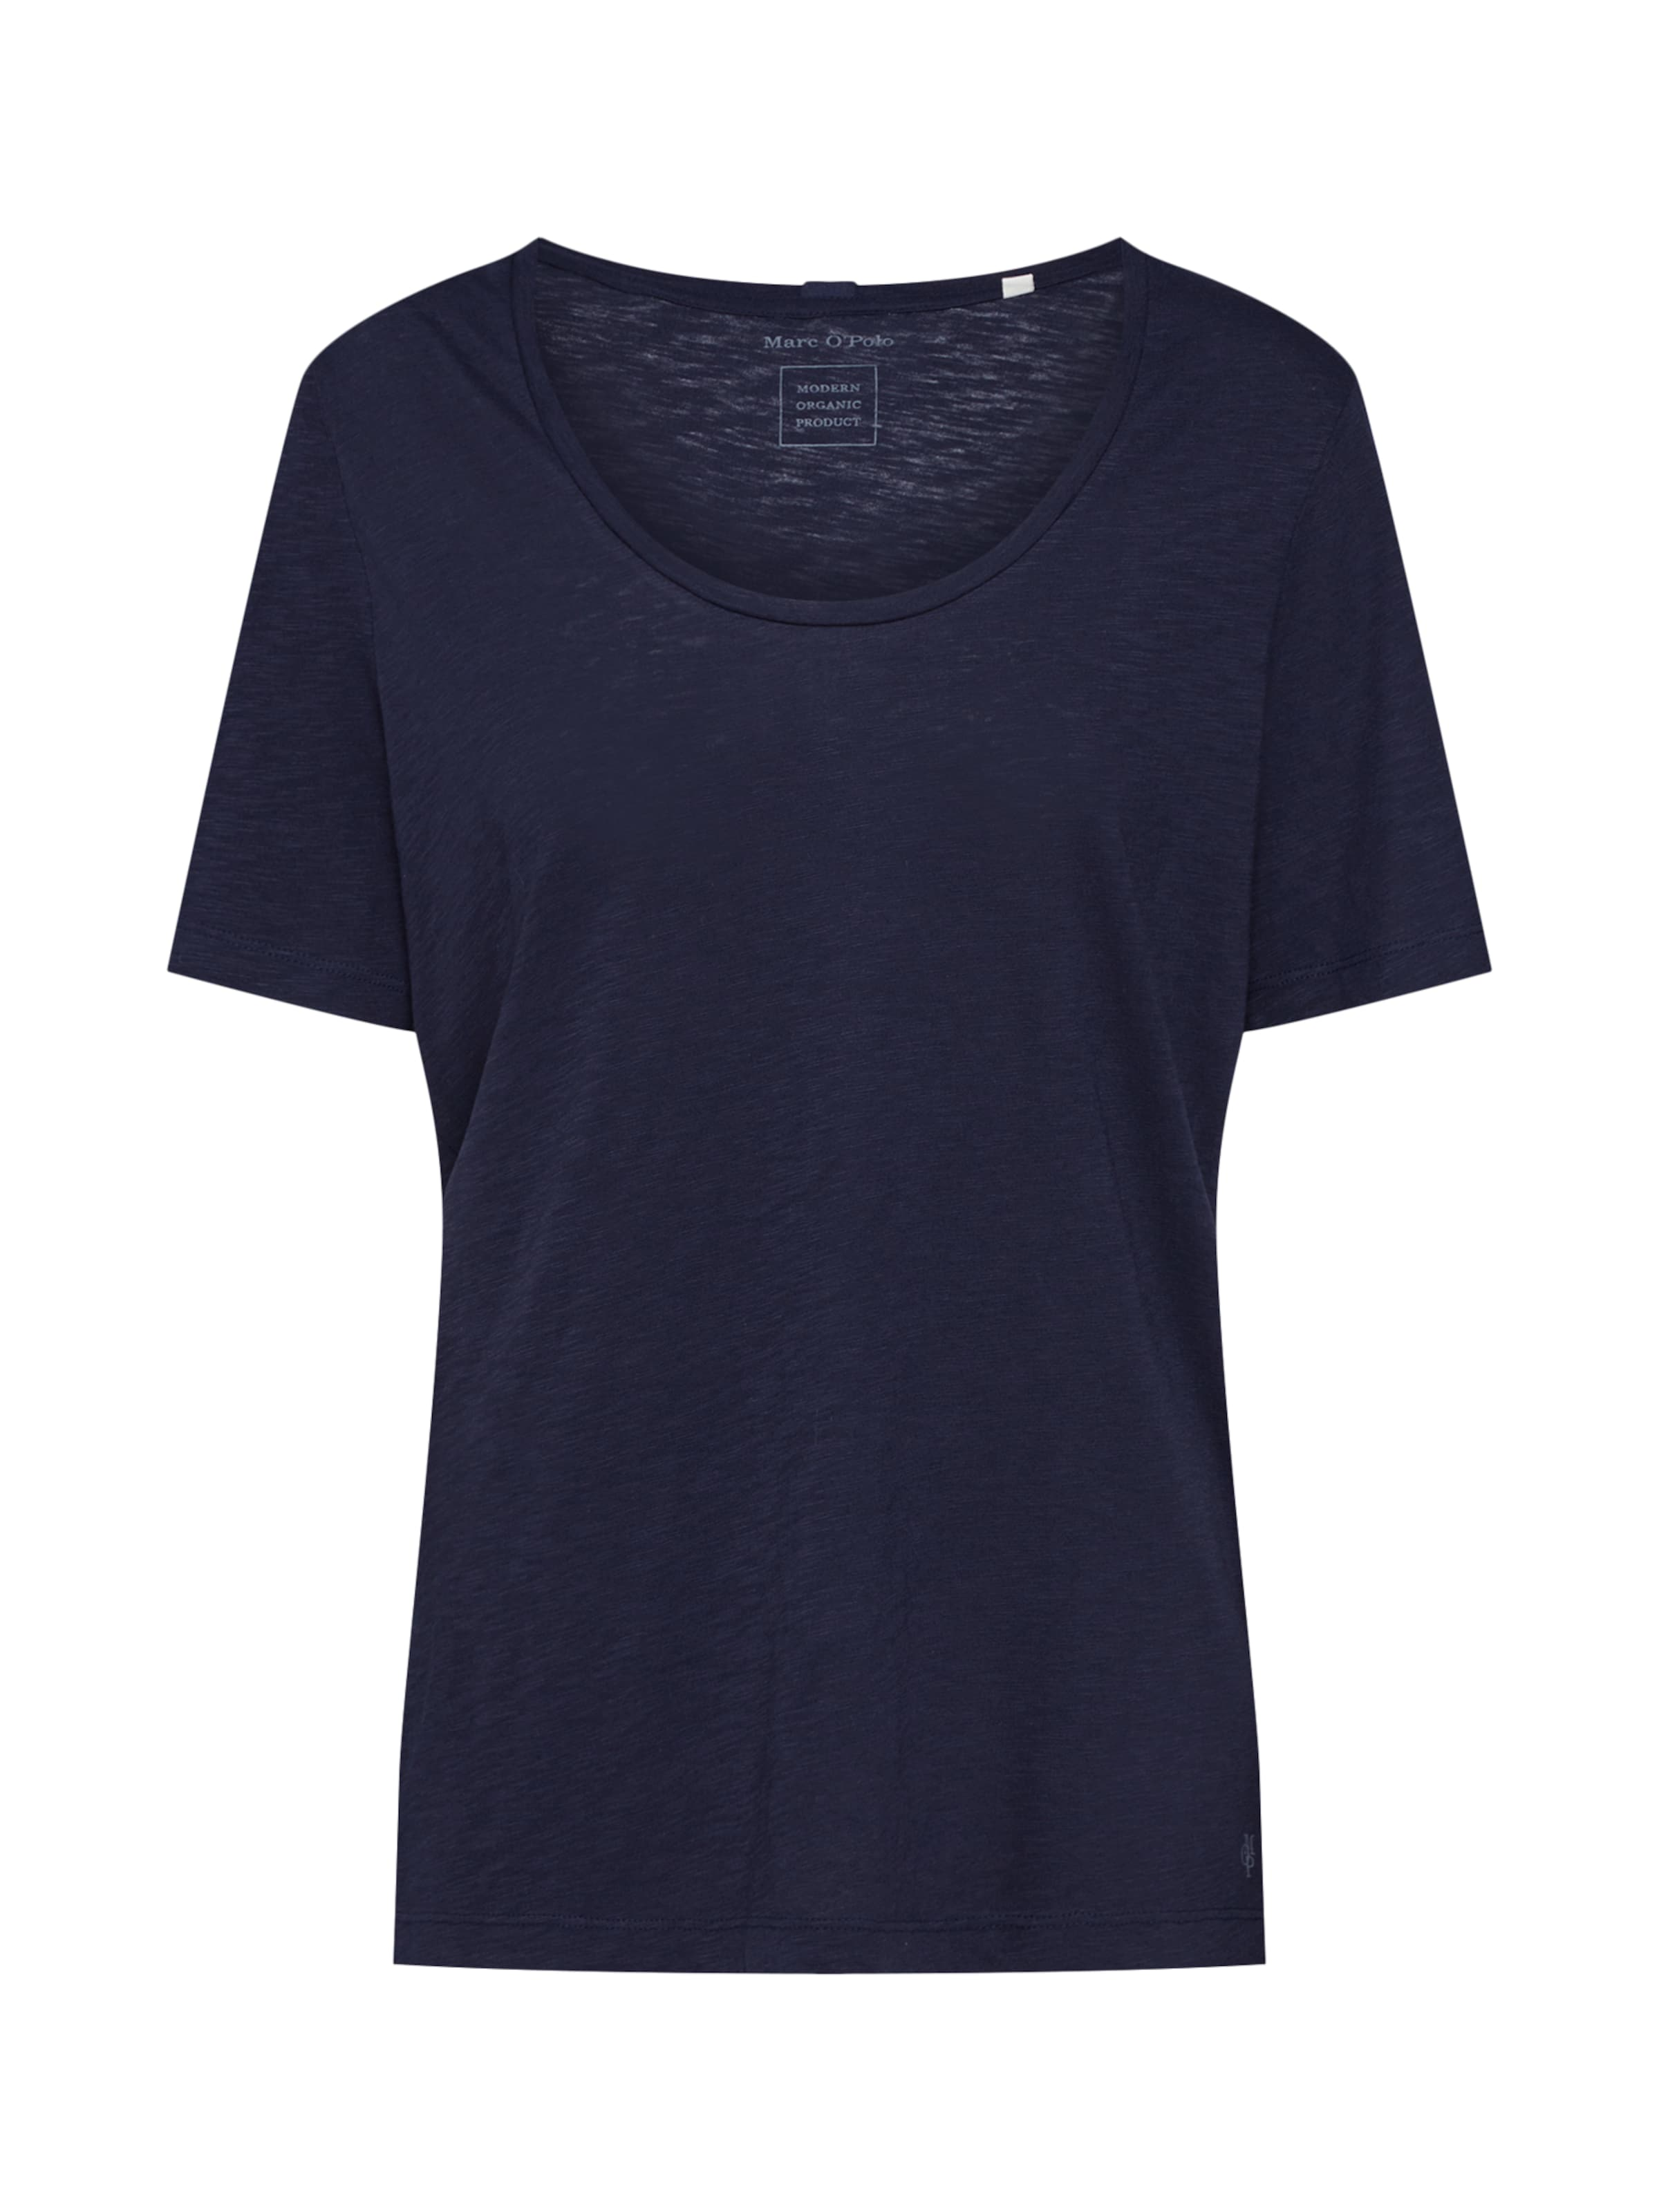 O'polo Dunkelblau Marc shirt T In FulcT3KJ1